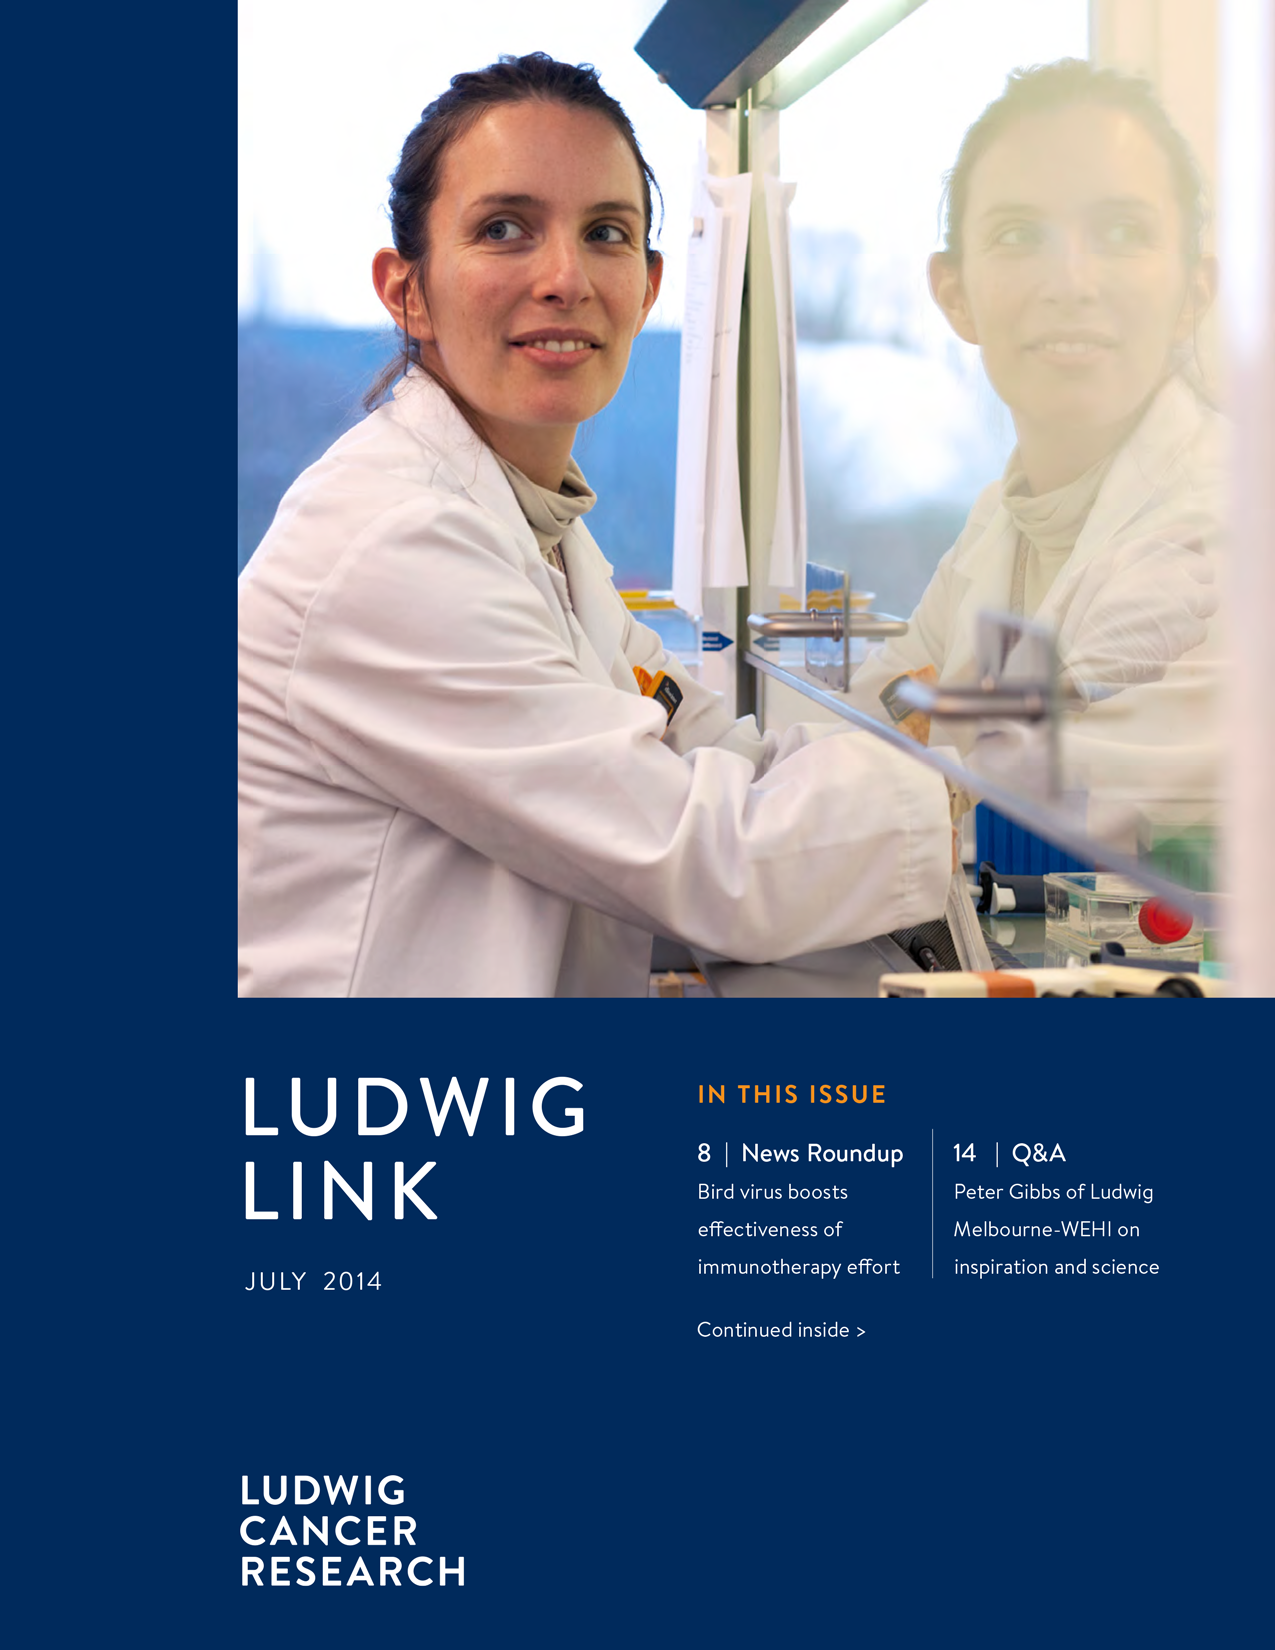 Ludwig Link July 2014 cover